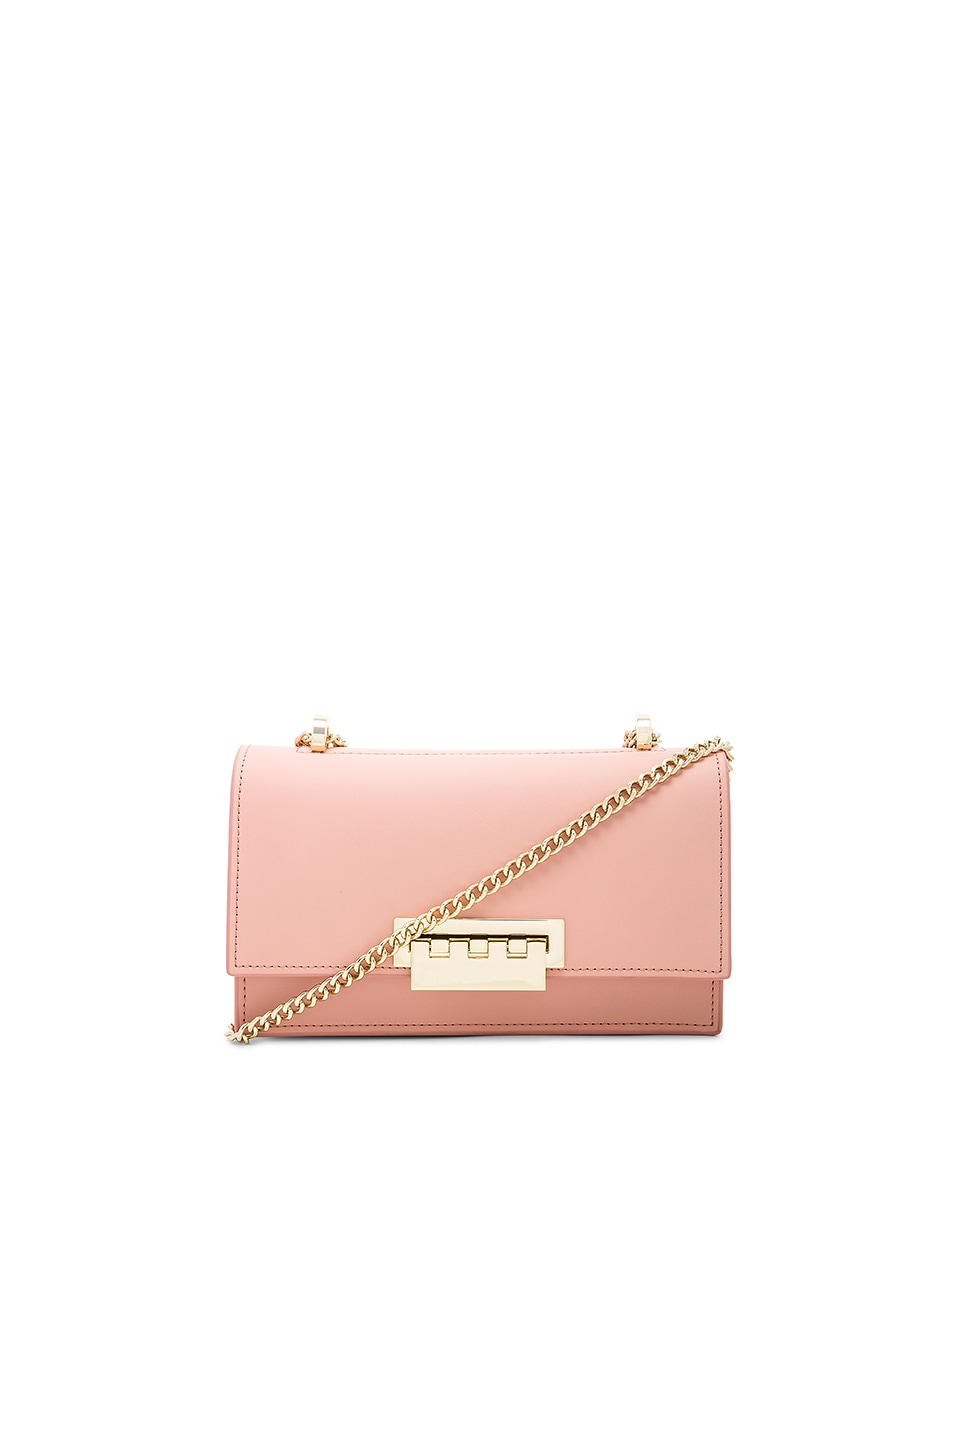 Zac Zac Posen Earthette Accordion Shoulder Bag in Rose